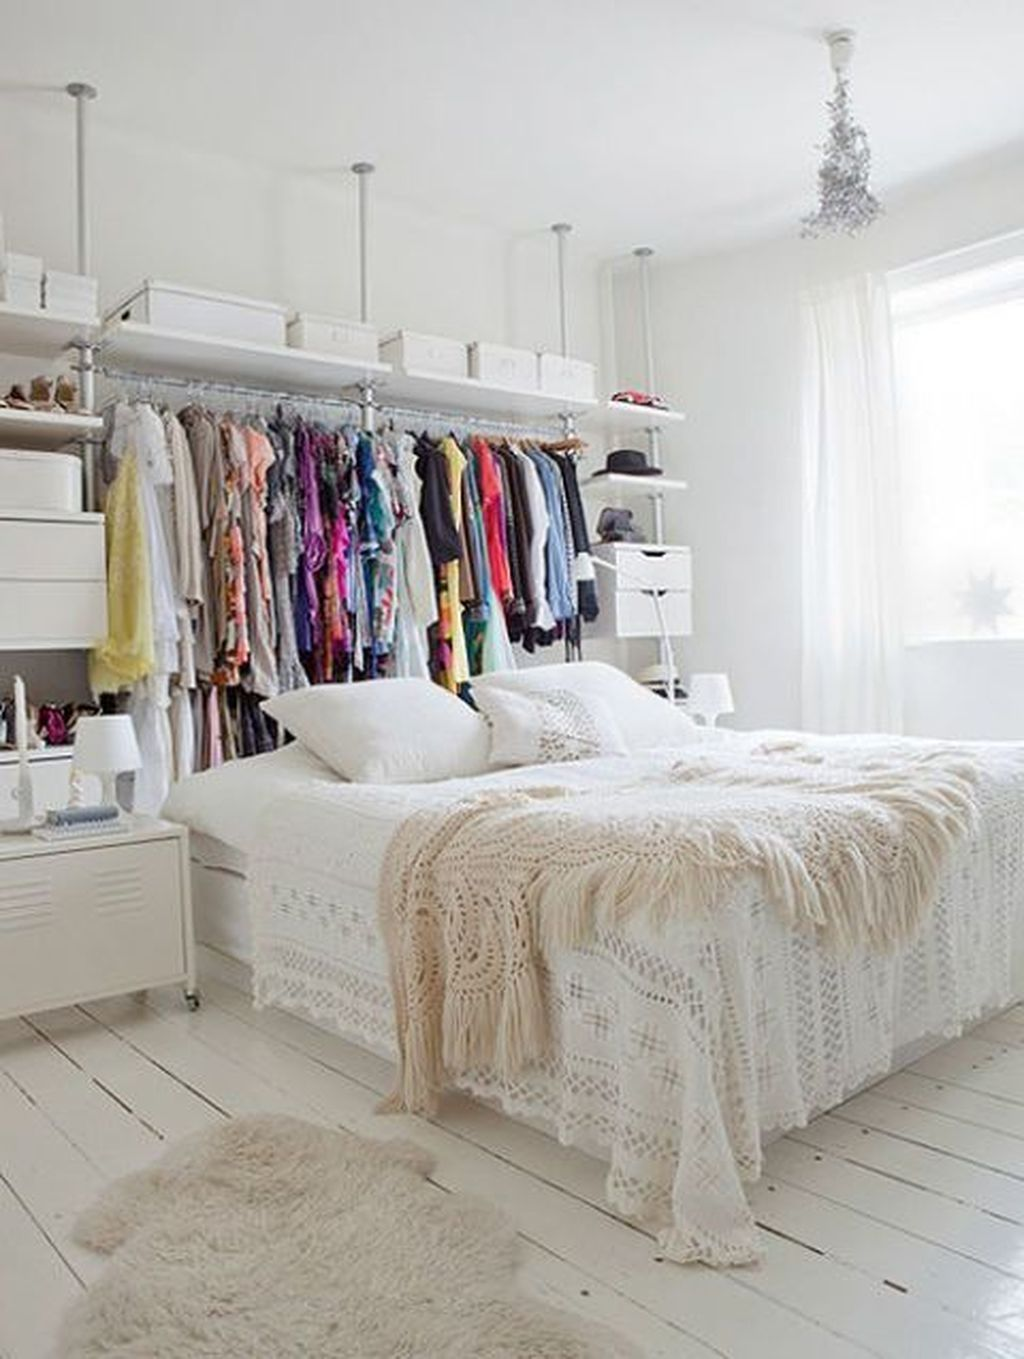 30 Stylish Storage Design Ideas For Small Spaces Bedroom